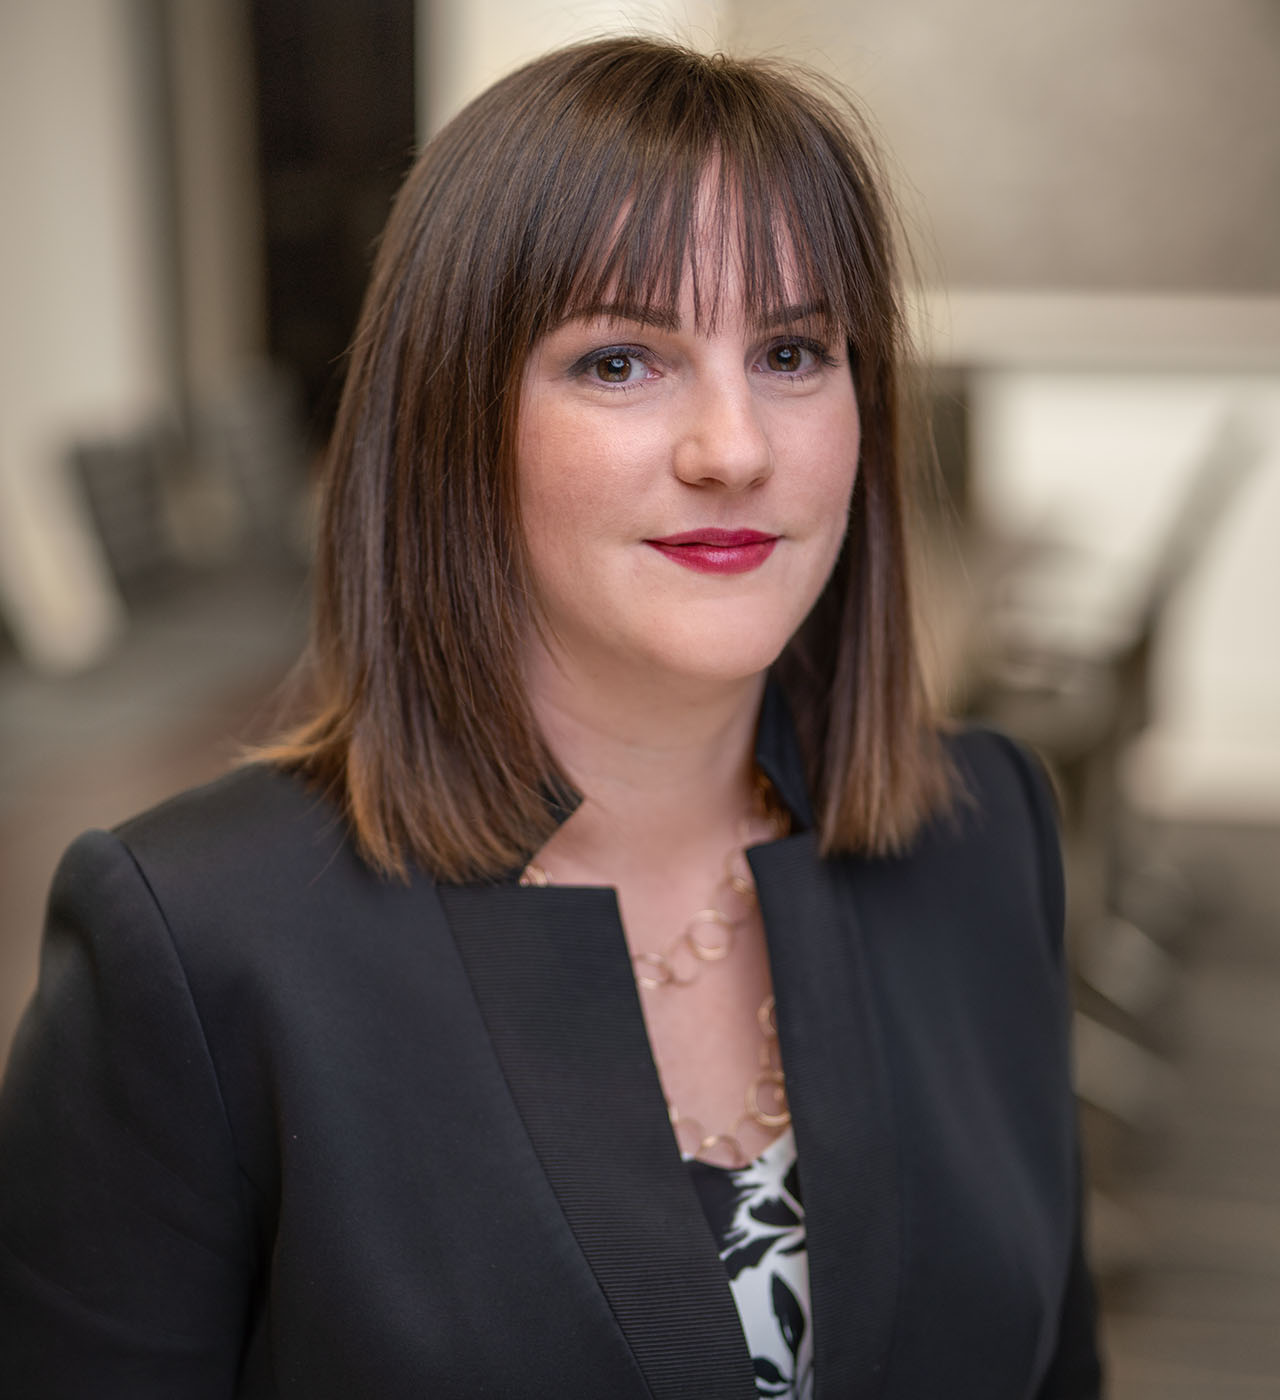 Roxanne S. Ouellette is a Partner at Kanuka Thuringer LLP